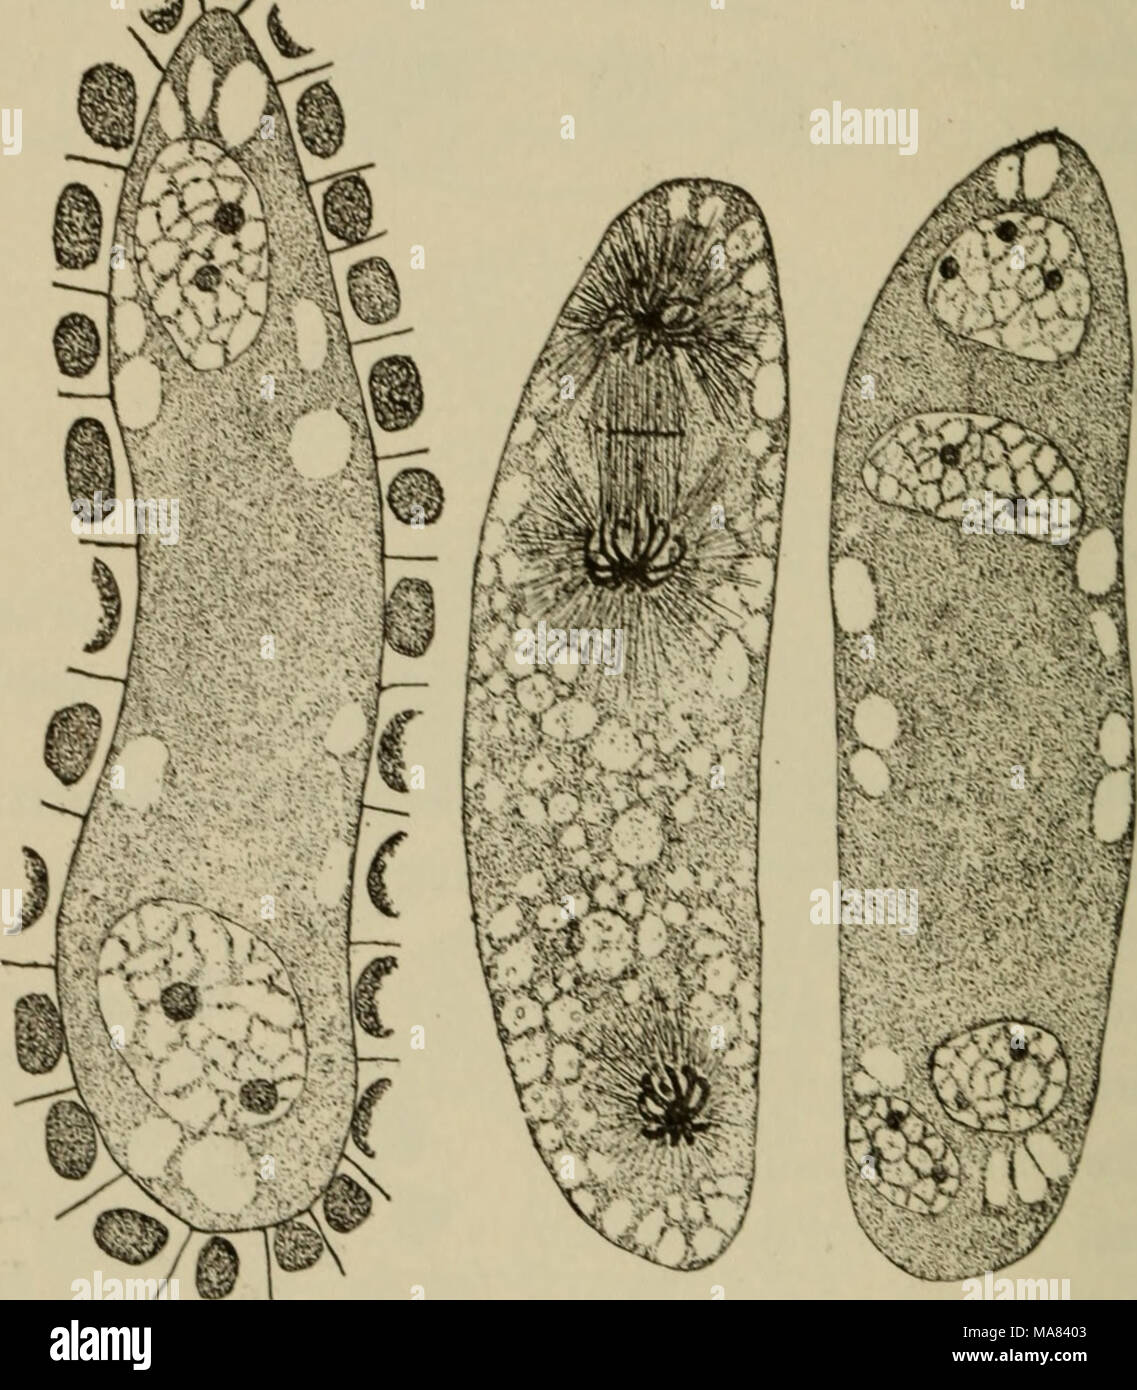 . Elementary botany . Fig. 304, Two- ami four-celled stage of embryo-sac of lilium. The middle one shows di ision nuclei to form the four-celled stage. (.Easter lily.) sperms, and in the angiosperms, fertilization, as we have seen, consists in the fusion oi a male nucleus with a female nucleus. Fertilization, then, in plants is identical with that which takes place in animals. 458. Embryo.—After fertilization the egg develops into a short row of cells, the suspensor of the embryo. At the free end the embyro develops. In figs. 309 and 310 is a young embryo of trillium. 459. Endosperm, the matu Stock Photo